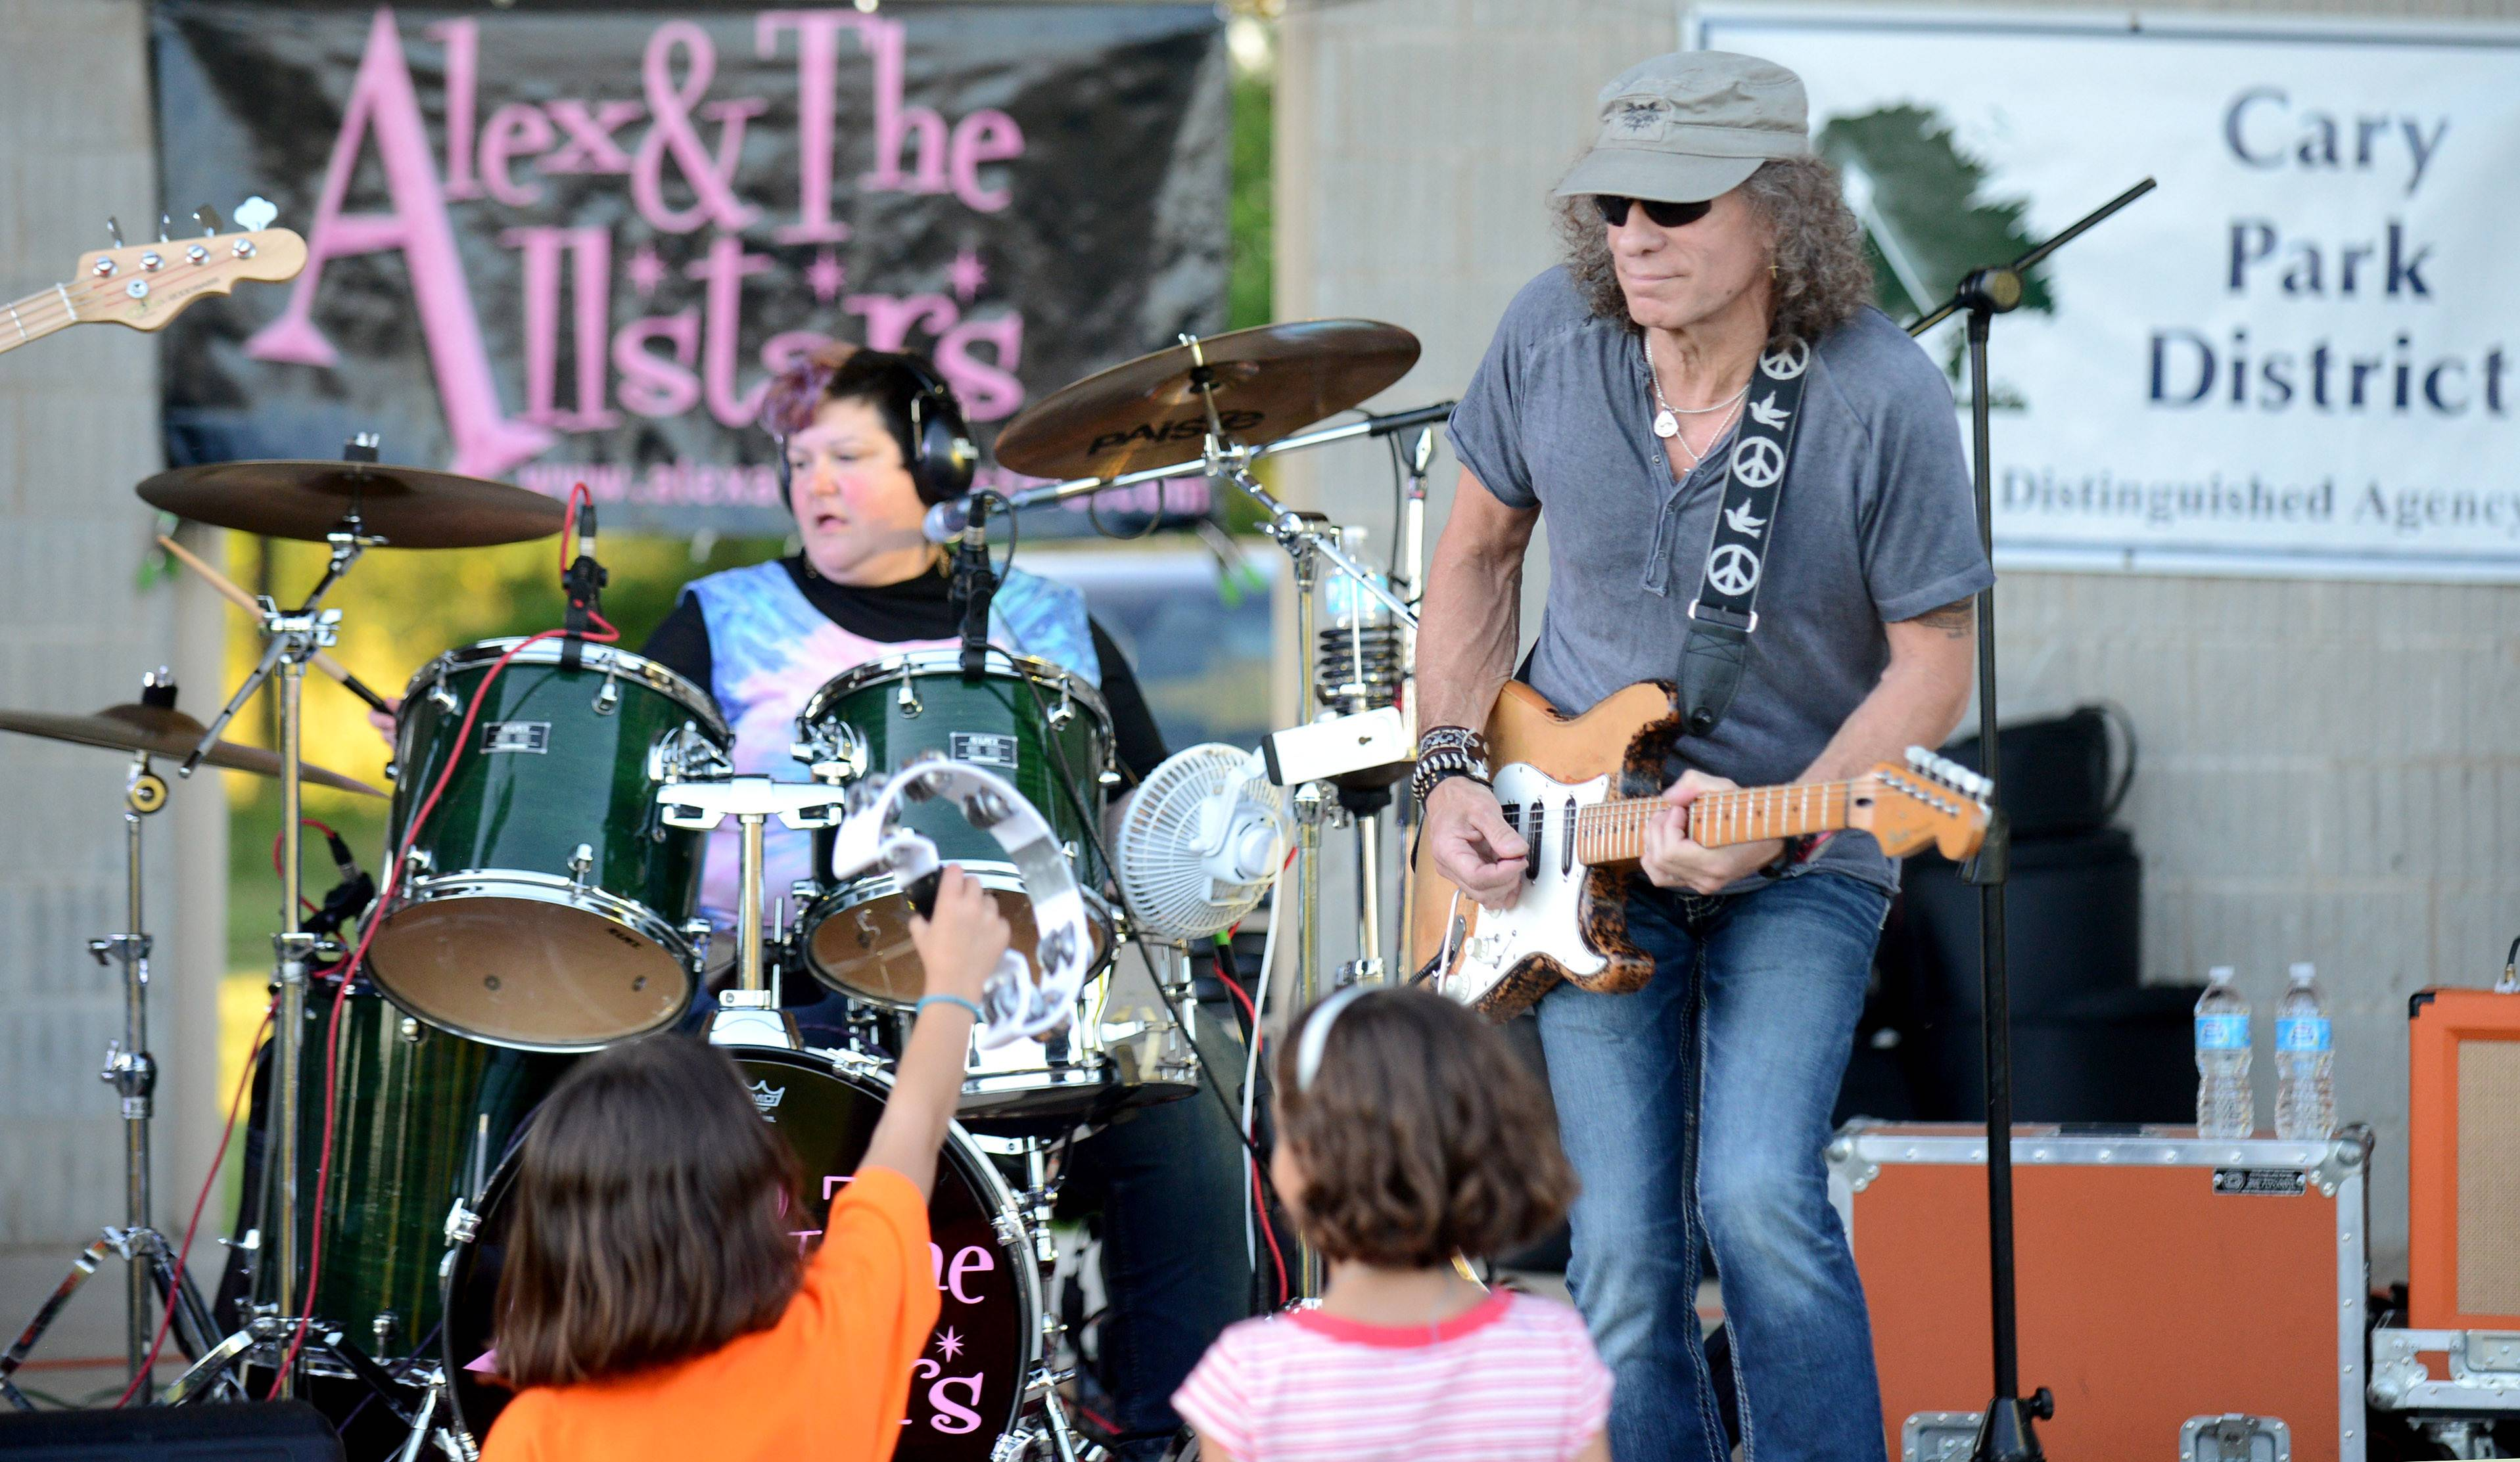 Alex Stanco on lead vocals and drums and Buddy Wiegelman on lead guitar, both of Fox River Grove, play to fans big and little Thursday during the Cary Summer Celebration at Lions Park. The band, which includes Lisa Lamanna of Kildeer and Bob Osters of Hoffman Estates, not shown, plays often summer concert series.